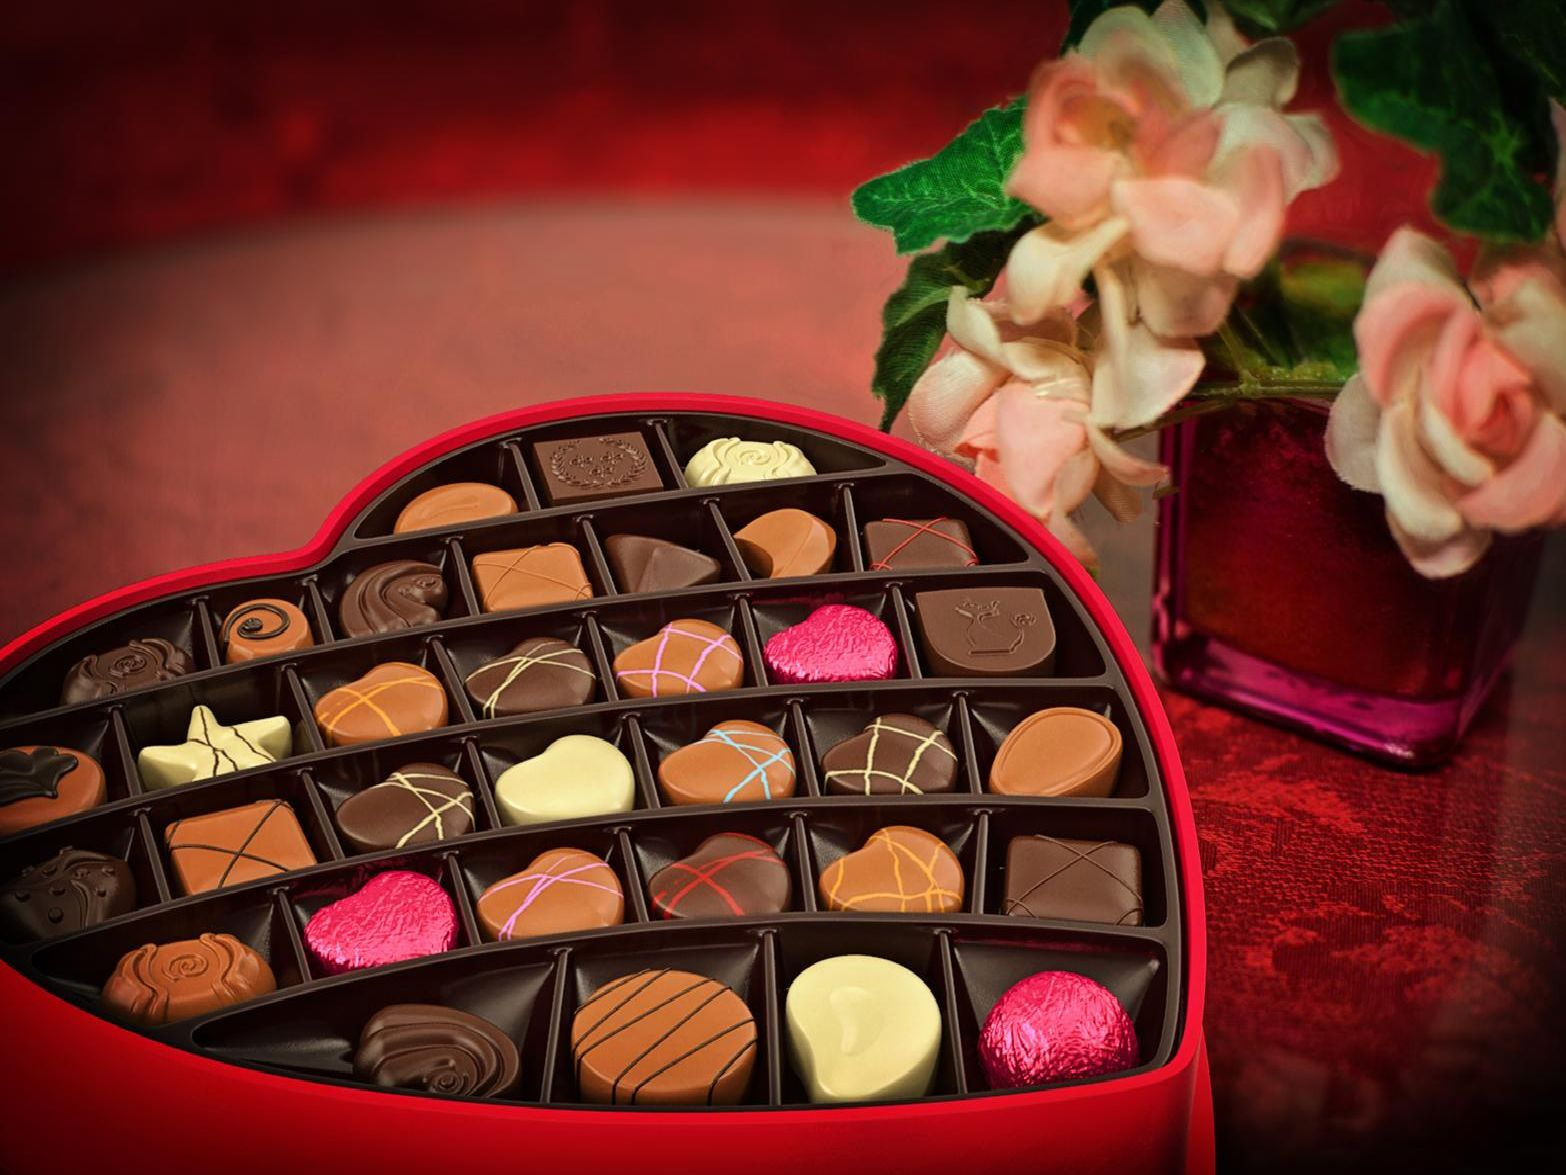 Traditional gifts include chocolates and flowers